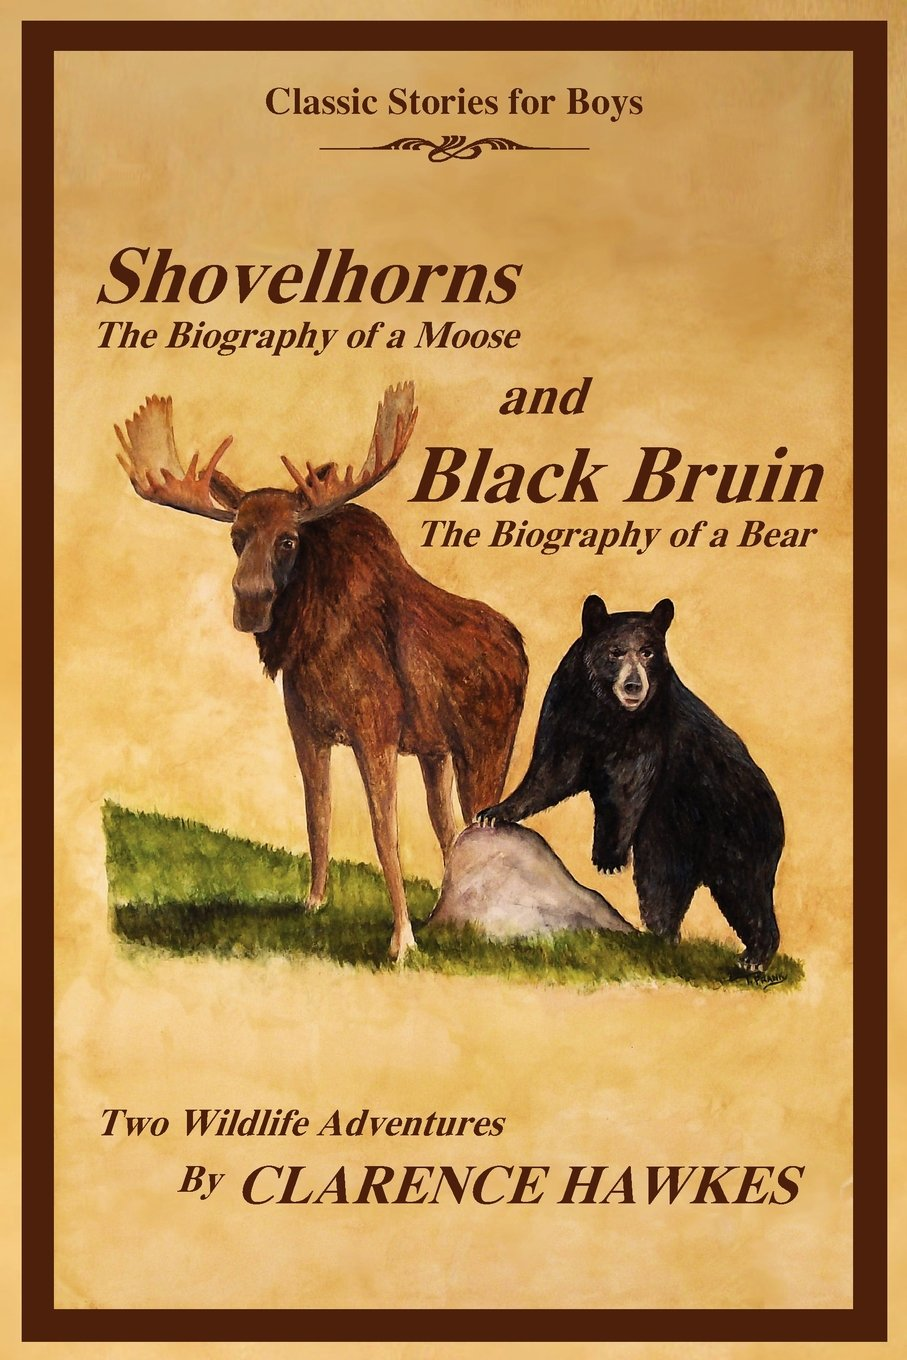 Read Online Classic Stories for Boys, Shovelhorns-The Biography of a Moose and Black Bruin-The Biography of a Bear, Two Wildlife Adventures By Clarence Hawkes ebook